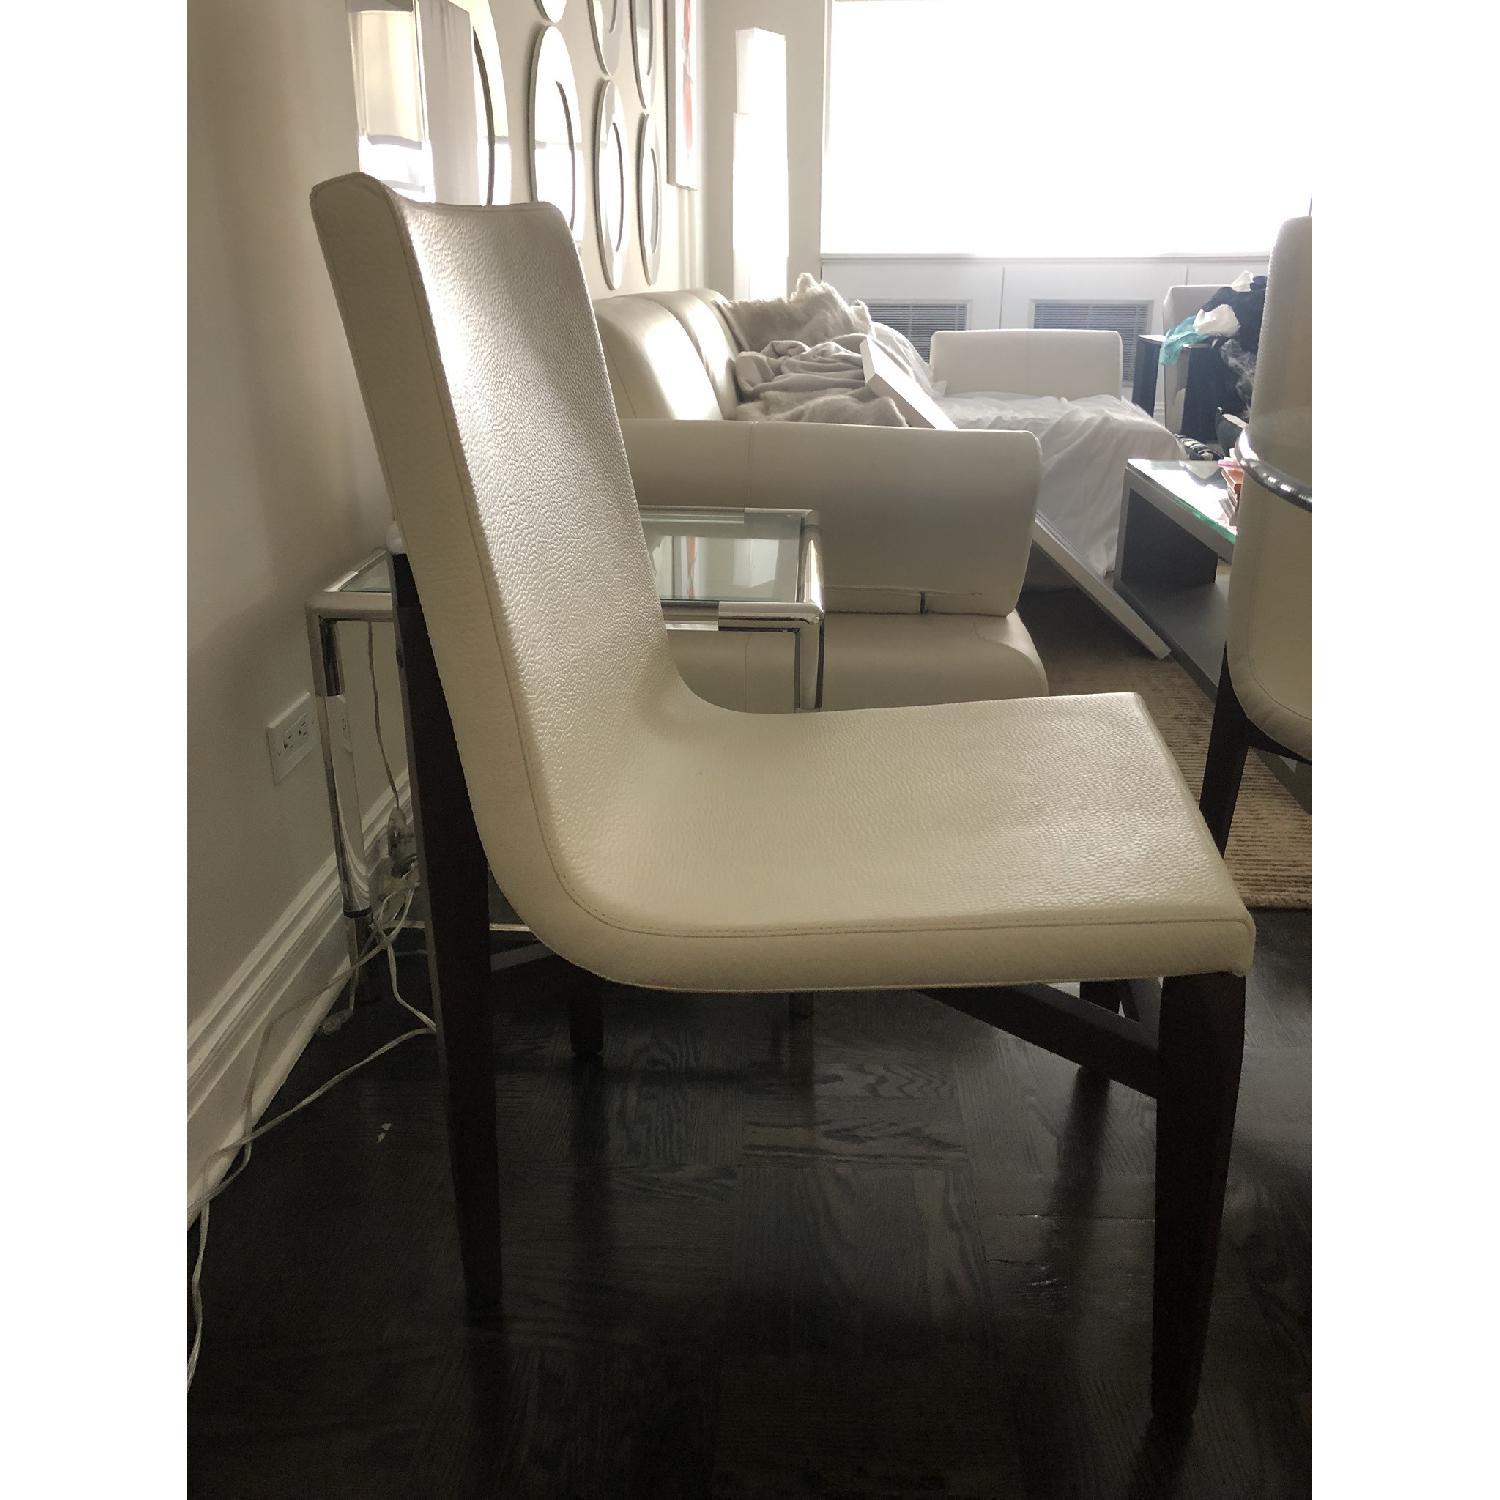 Glass Dining Table w/ 4 White Leather & Wood Dining Chairs - image-3